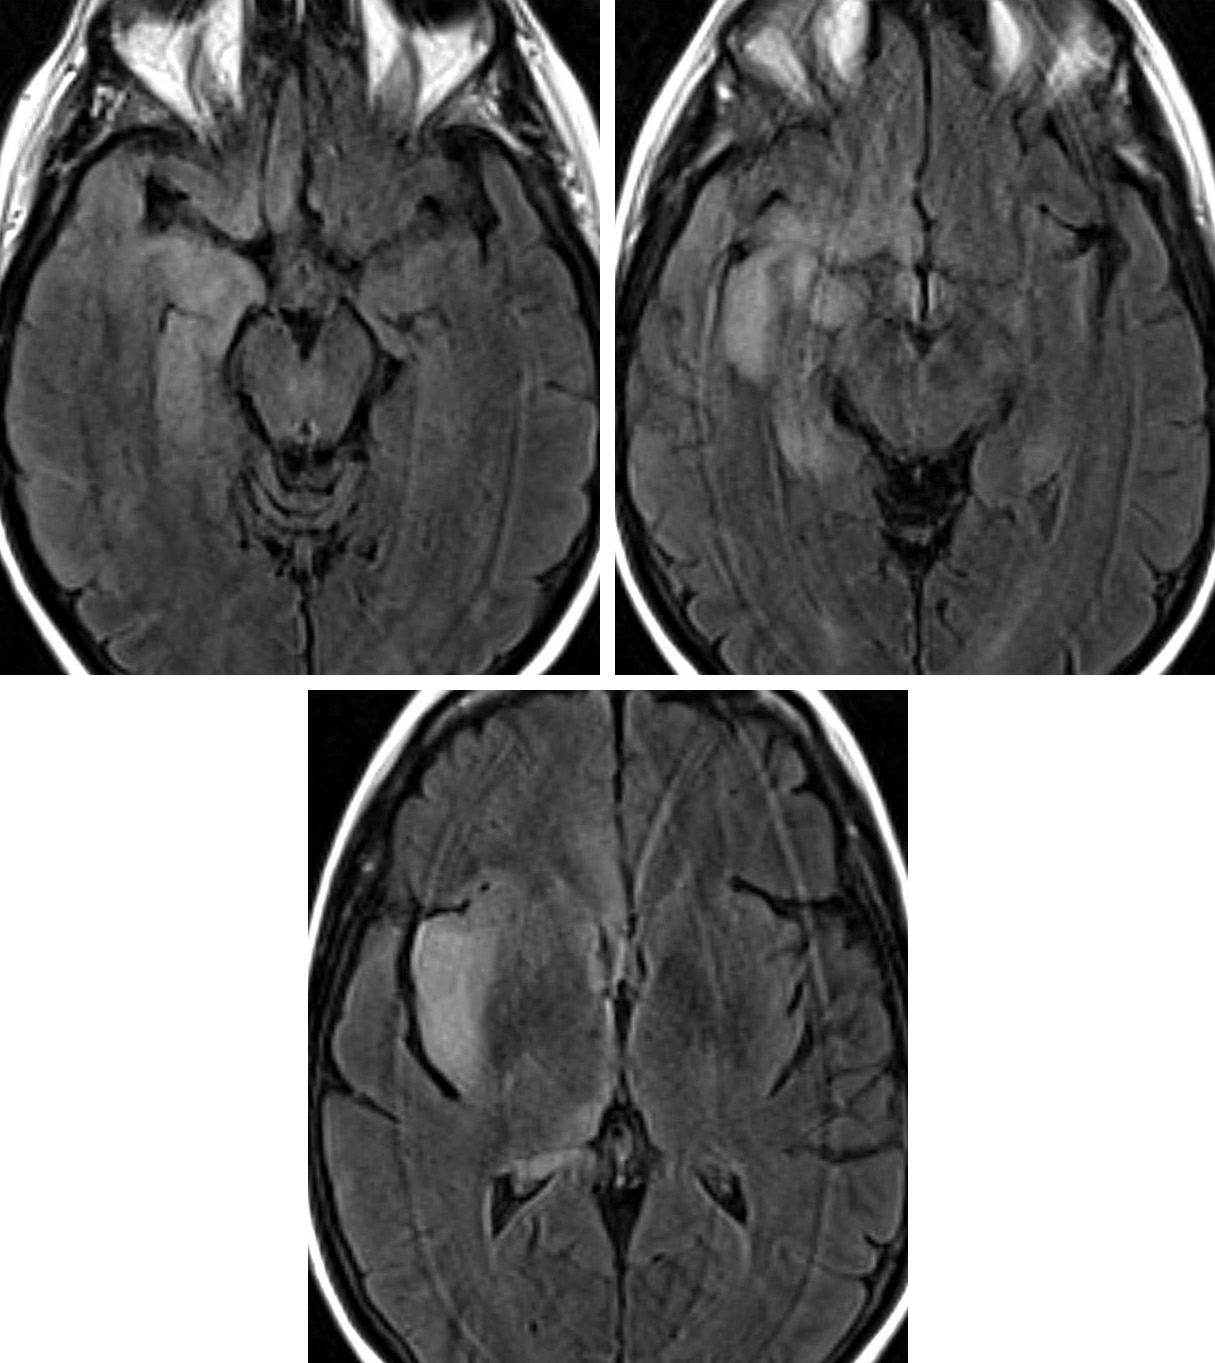 Figure 2: In the same patient as Figure 1, Axial FLAIR MR images demonstrate hyperintense edema involving the cortex and subcortical white matter of the medial anterior right temporal lobe, inferior right frontal lobe and right insular cortex with sparing of the basal ganglia.